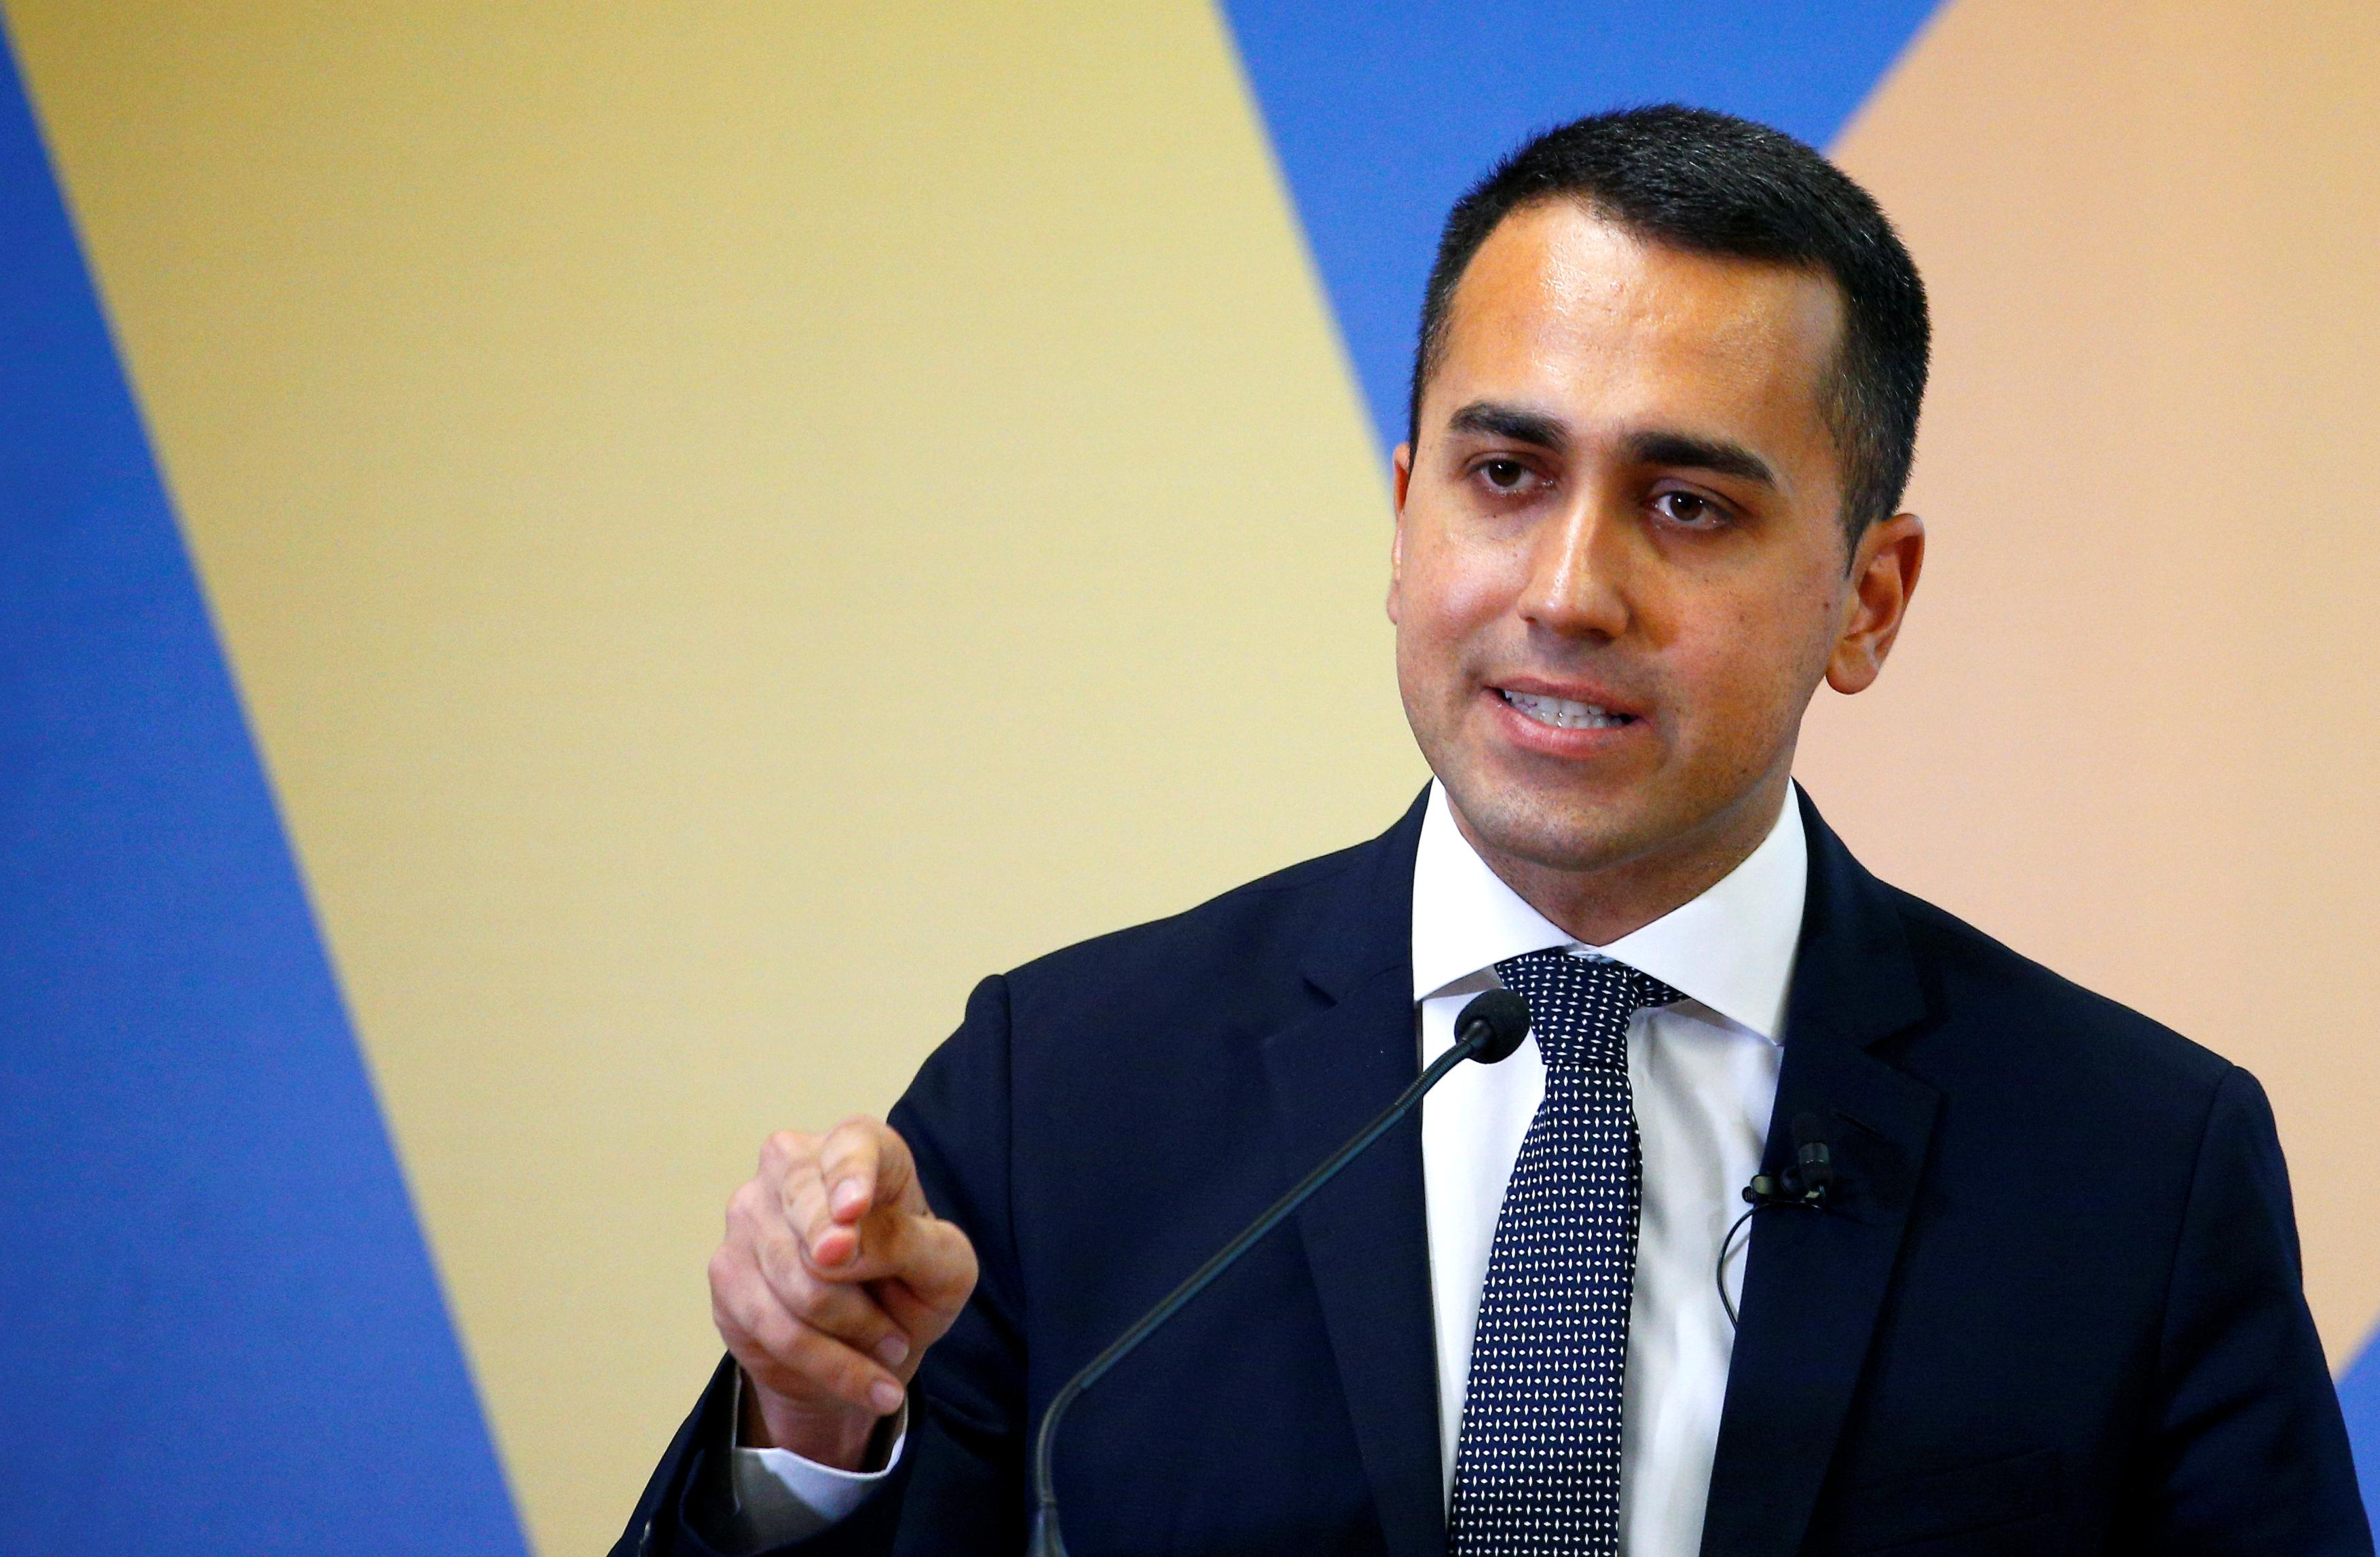 Italy will discuss later this year how to fund tax cuts: Di Maio